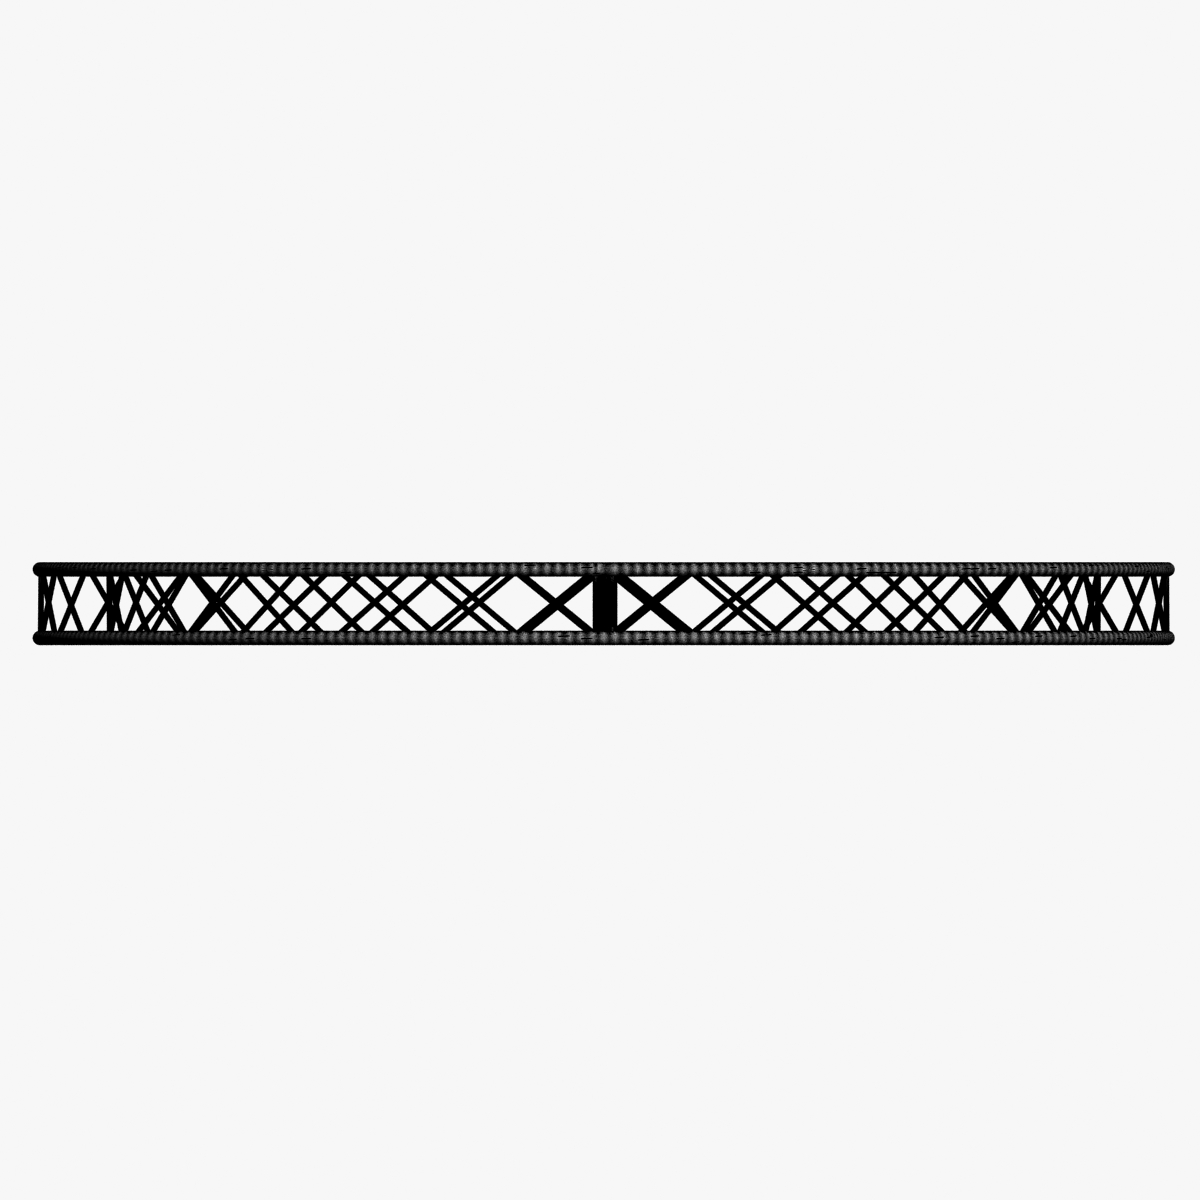 circle square truss (400cm) 3d model max fbx obj 218639